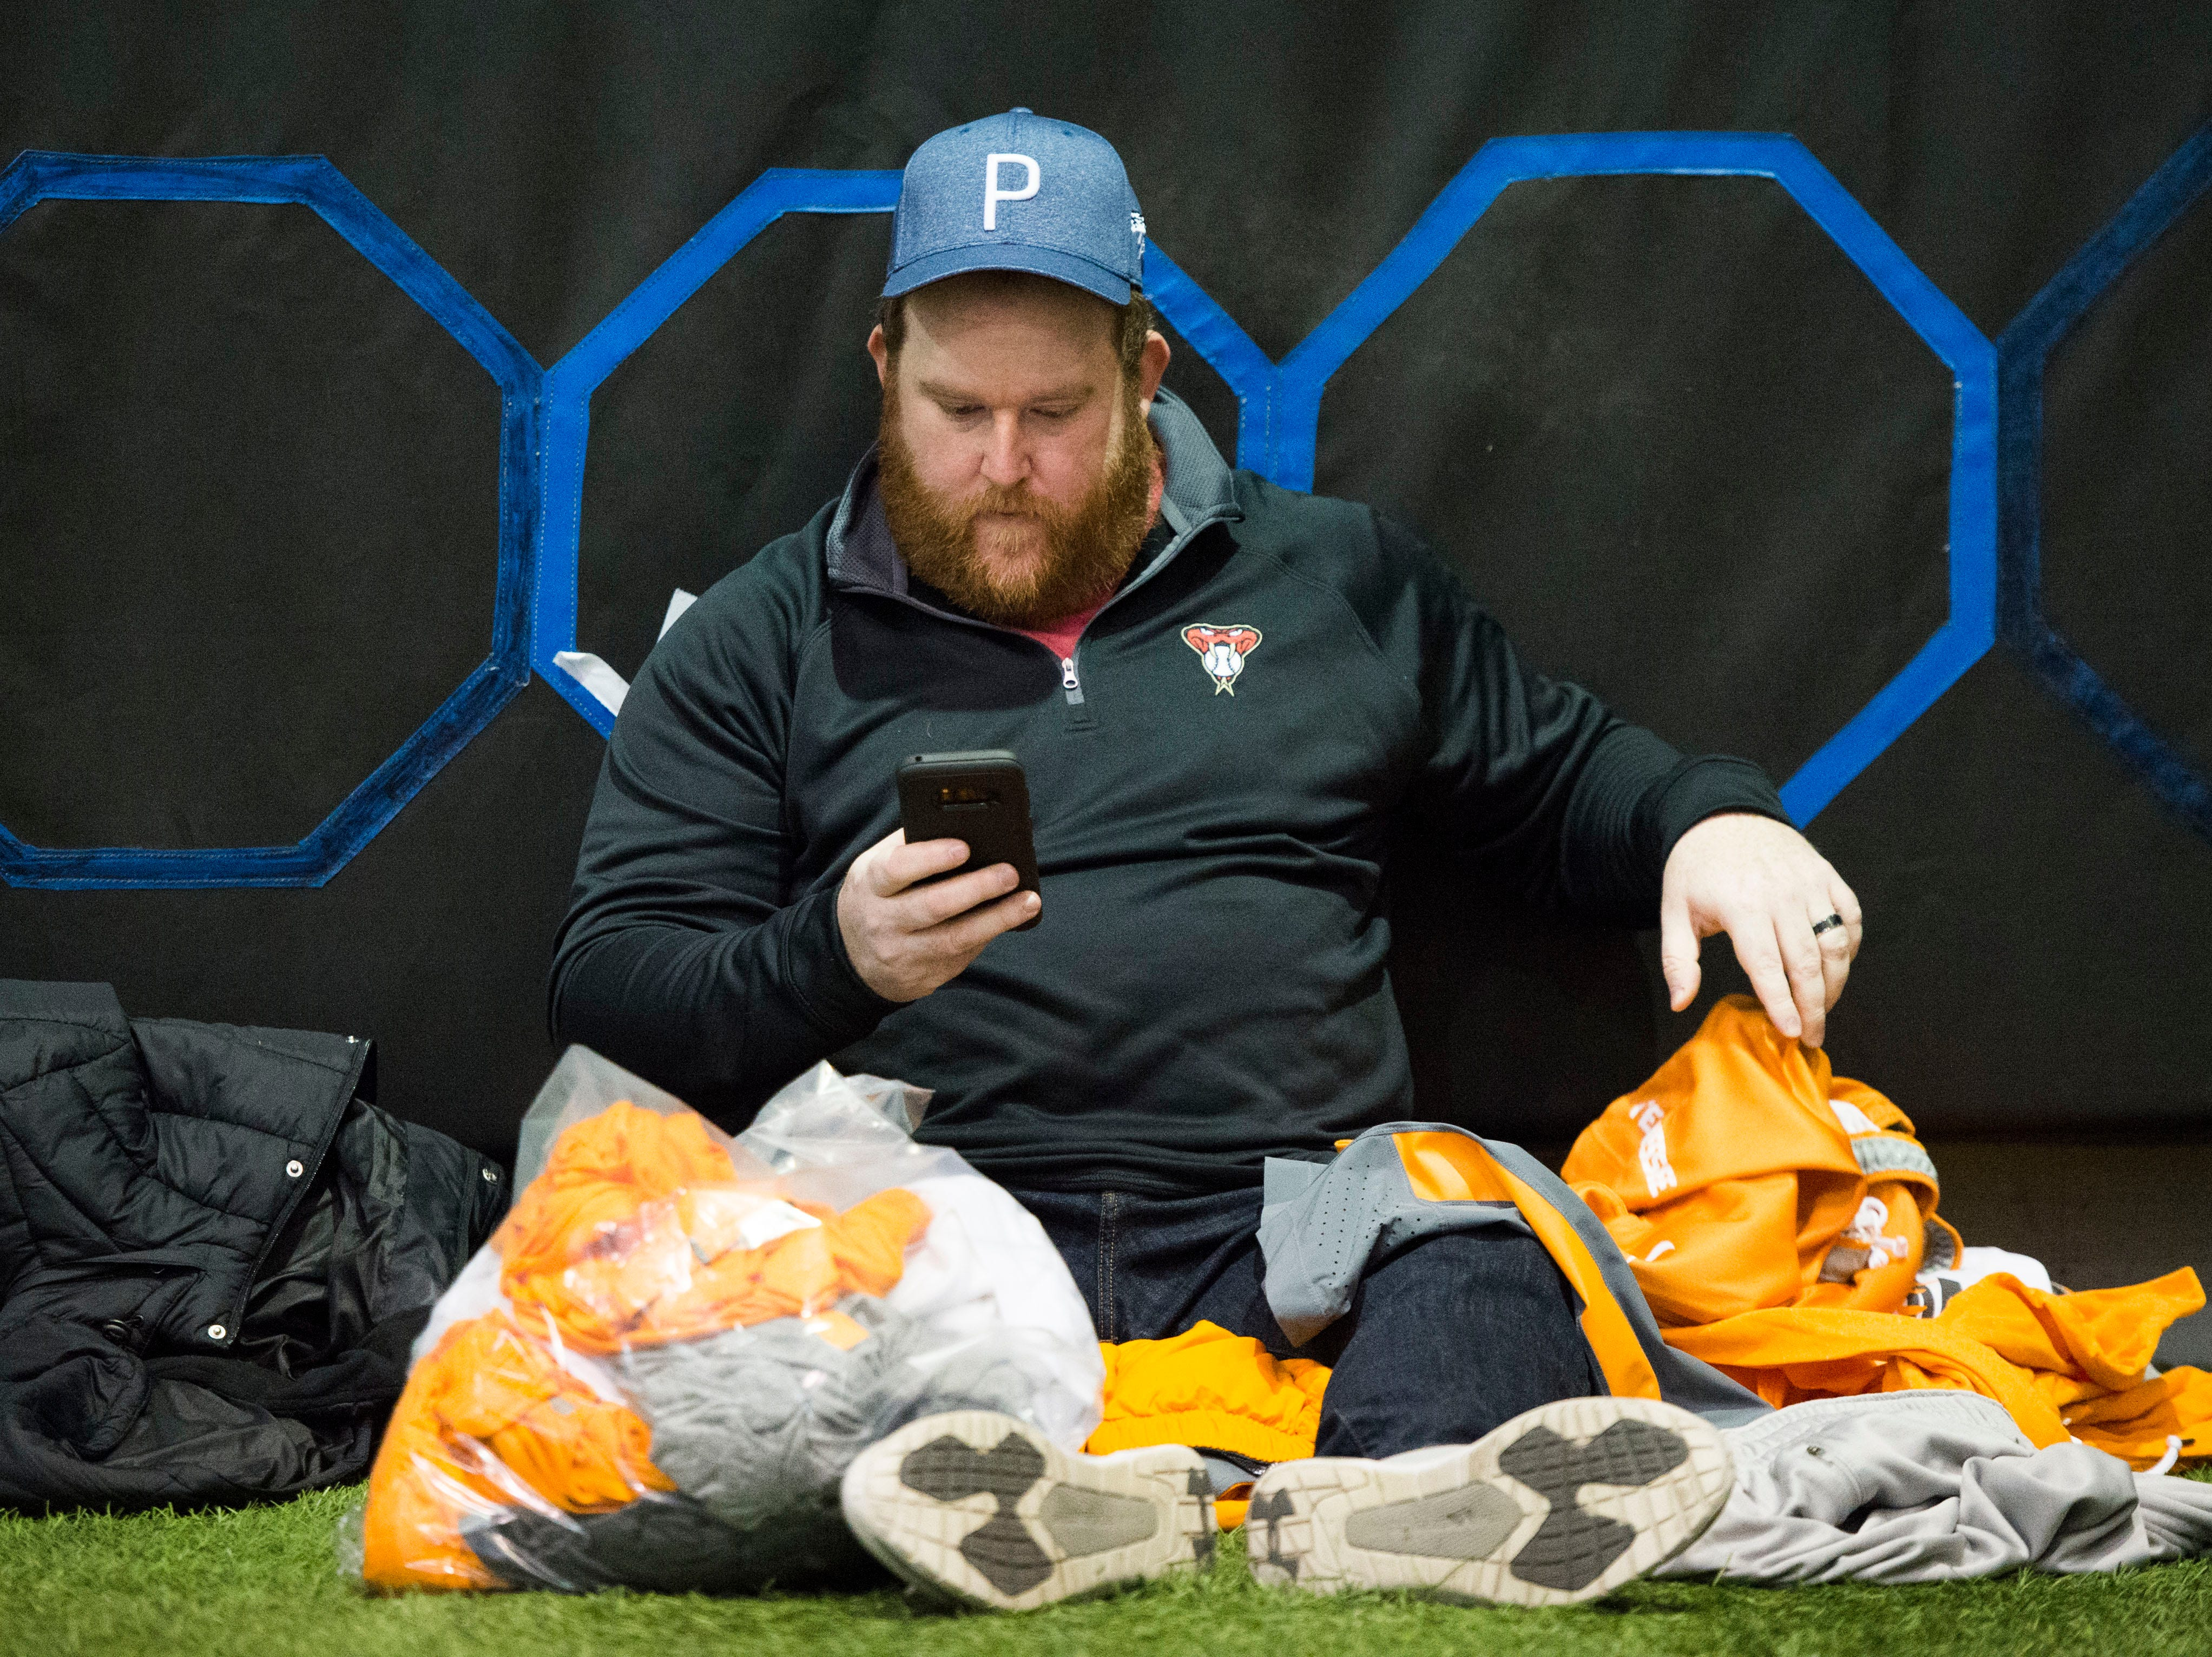 Daniel Howard of Knoxville takes a break from shopping for athletic apparel on Tennessee football's indoor practice field during University of Tennessee Athletic Department's inventory sale Wednesday, Dec. 12, 2018. Helmets and jerseys were sold along side the discount gear for hundreds of dollars.